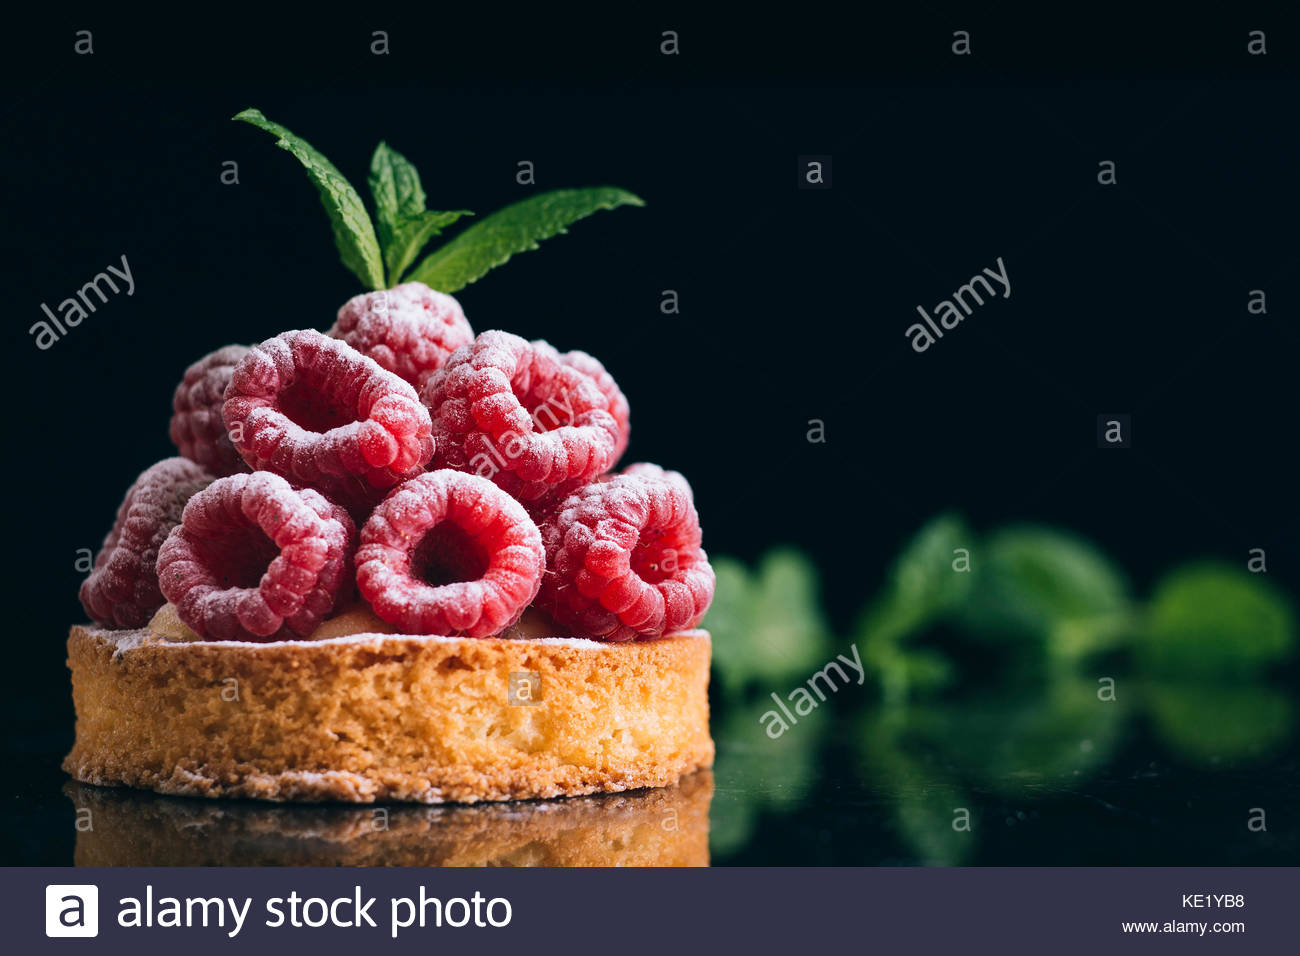 Raspberry tart dessert on dark background. Traditional french sweet pastry. Delicious, appetizing, homemade cake - Stock Image